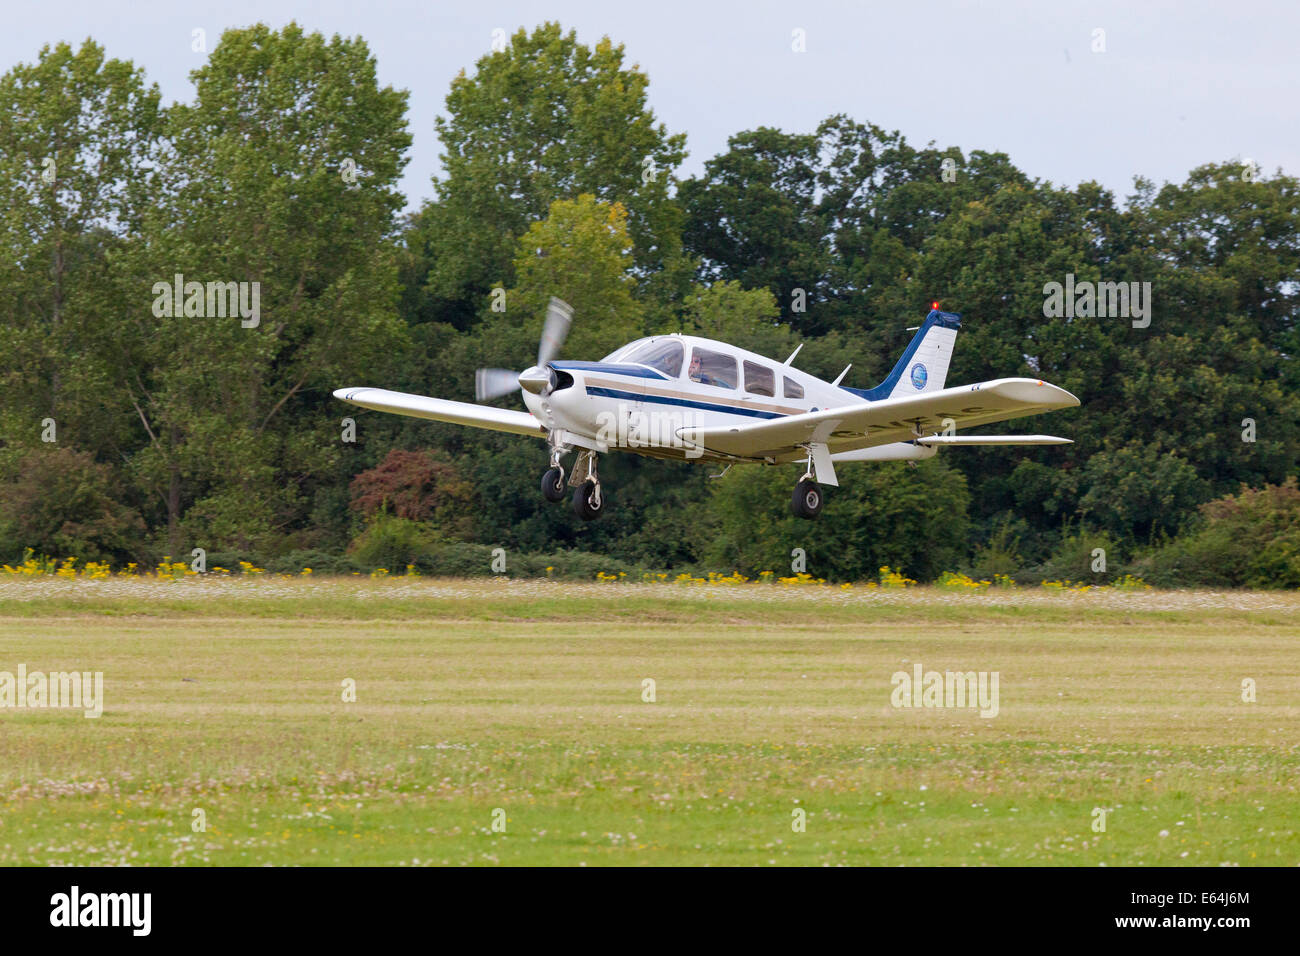 PIPER PA-28R-200 CHEROKEE ARROW light aircraft taking off in UK - Stock Image